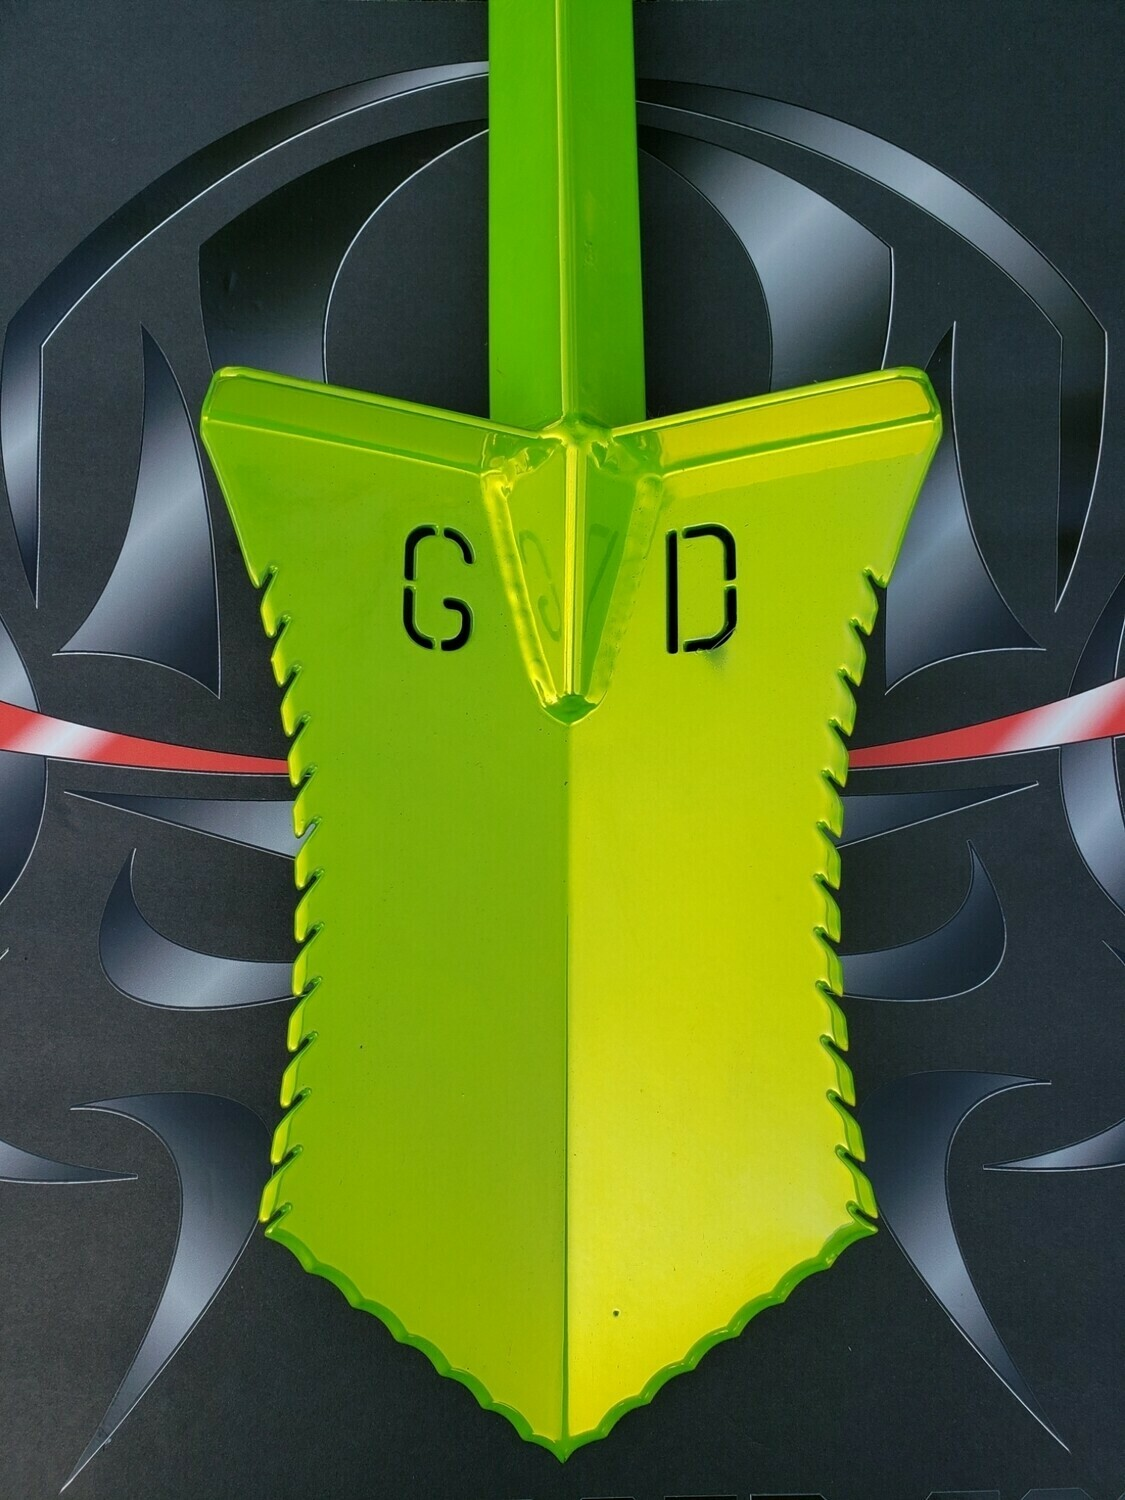 VENOM GREEN BAD POWDER COAT SHOVELS - SOLD AS IS - NON RETURNABLE OR REFUNDABLE